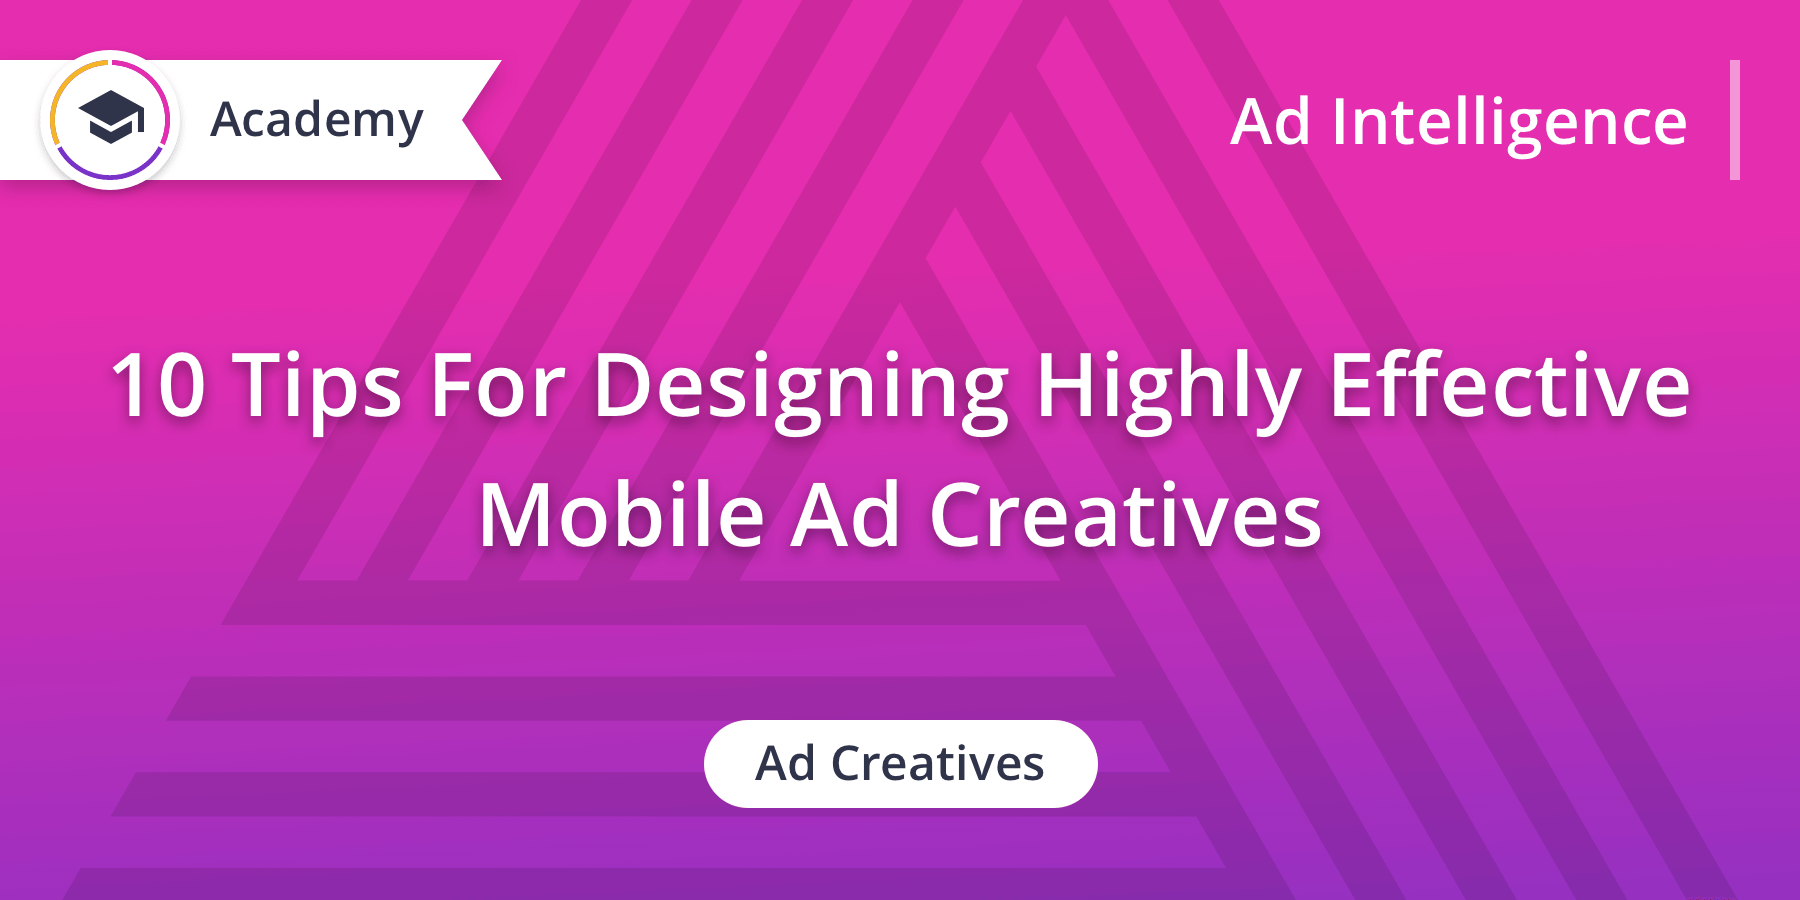 10 Tips For Designing Highly Effective Mobile Ad Creatives